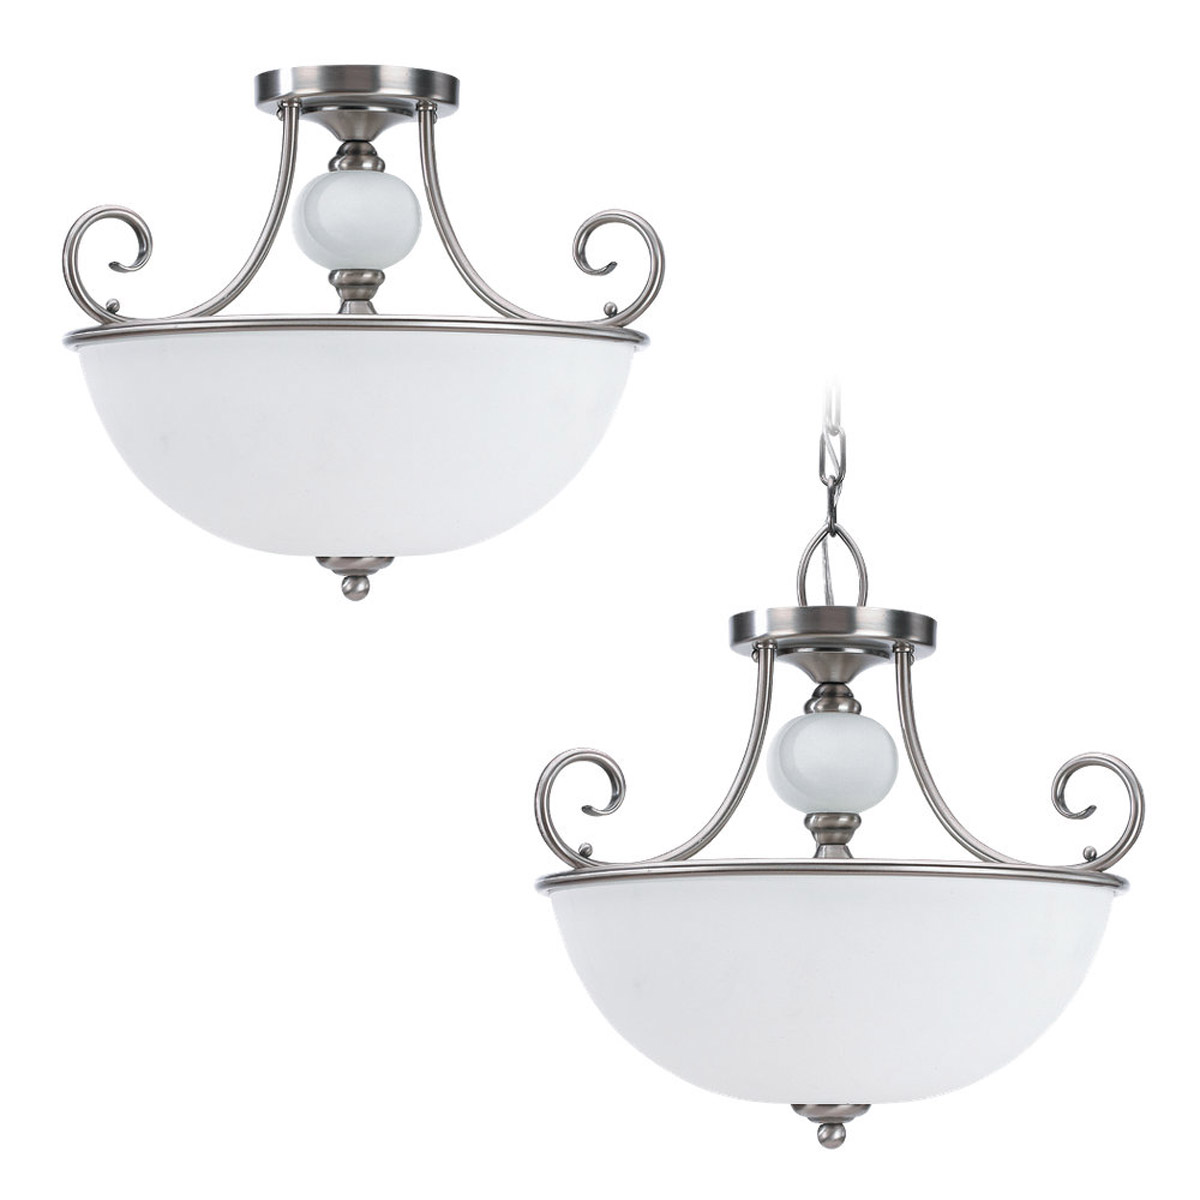 Sea Gull Lighting Montclaire 3 Light Pendant Convertible in Antique Brushed Nickel 51105-965